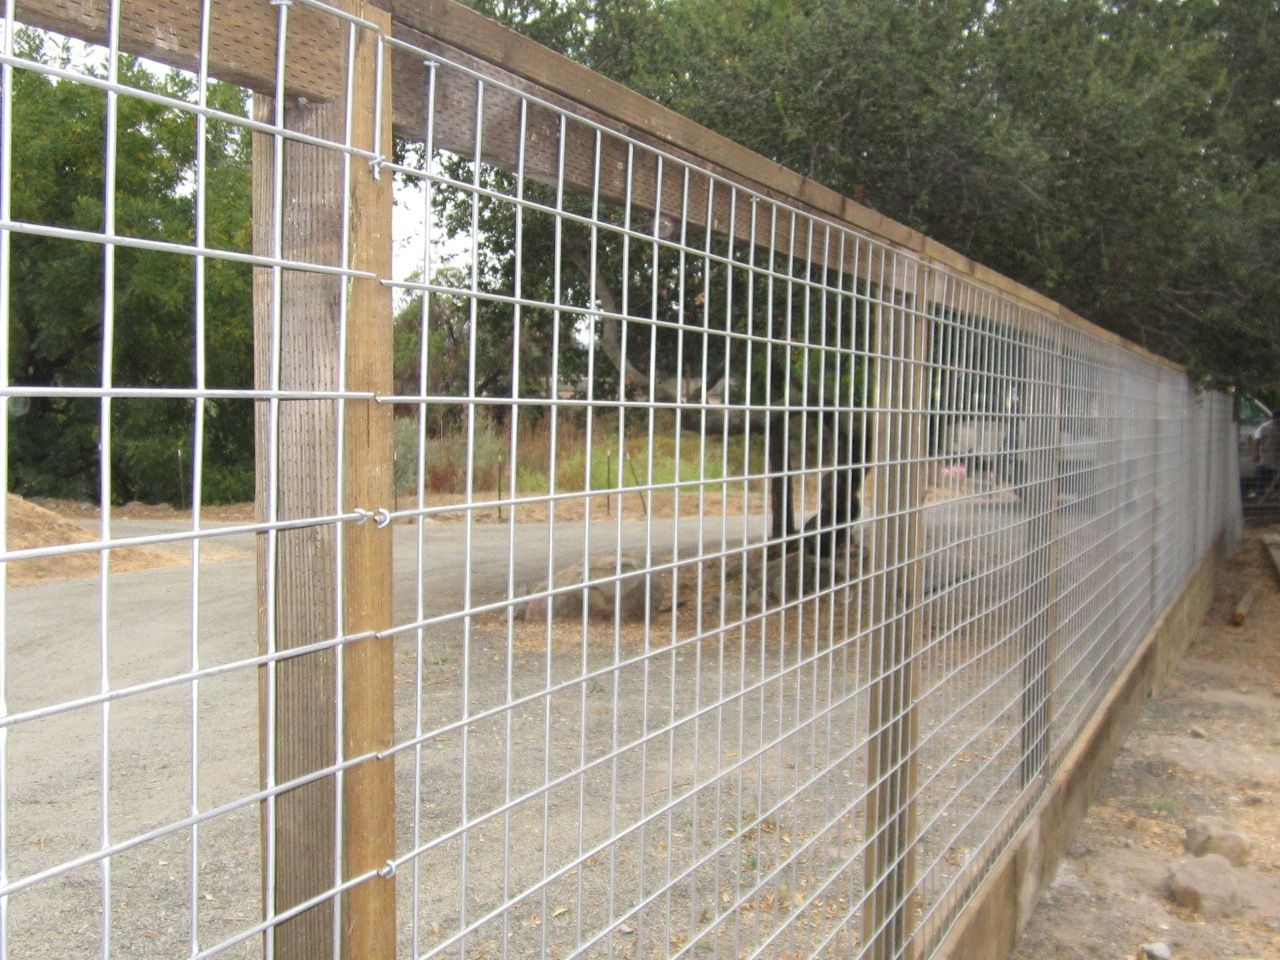 4 4 2 4 Hi Five Wire Panels Arbor Fence Inc A Diamond Certified Company Welded Wire Fence Hog Wire Fence Cattle Panel Fence